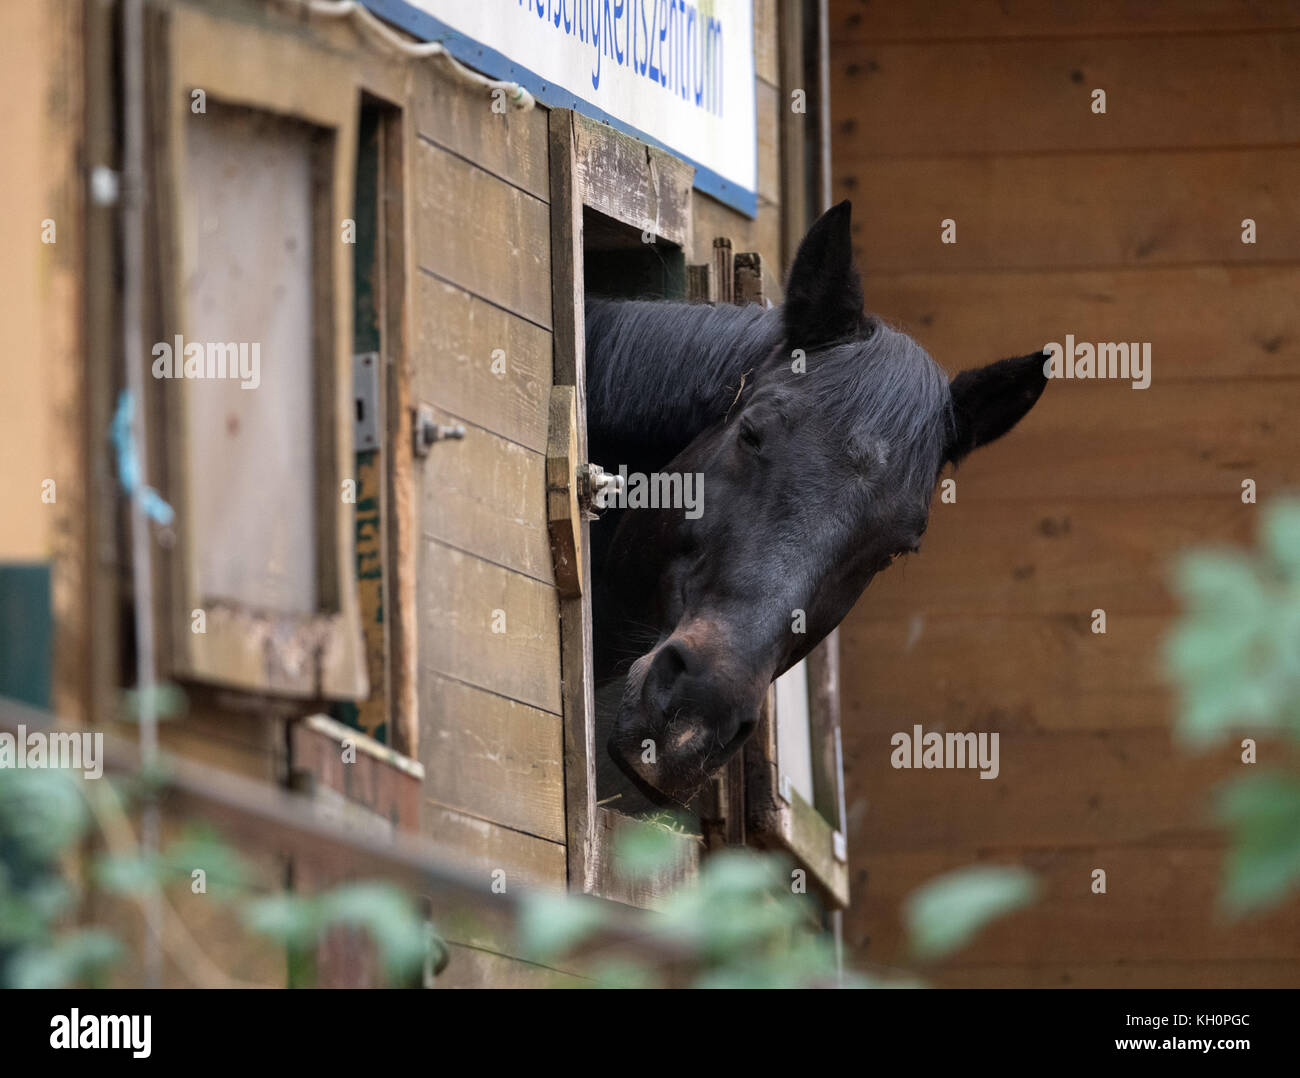 Berlin, Germany. 09th Nov, 2017. A horse sticking its head out of the stable's window at the versatility center - Stock Image